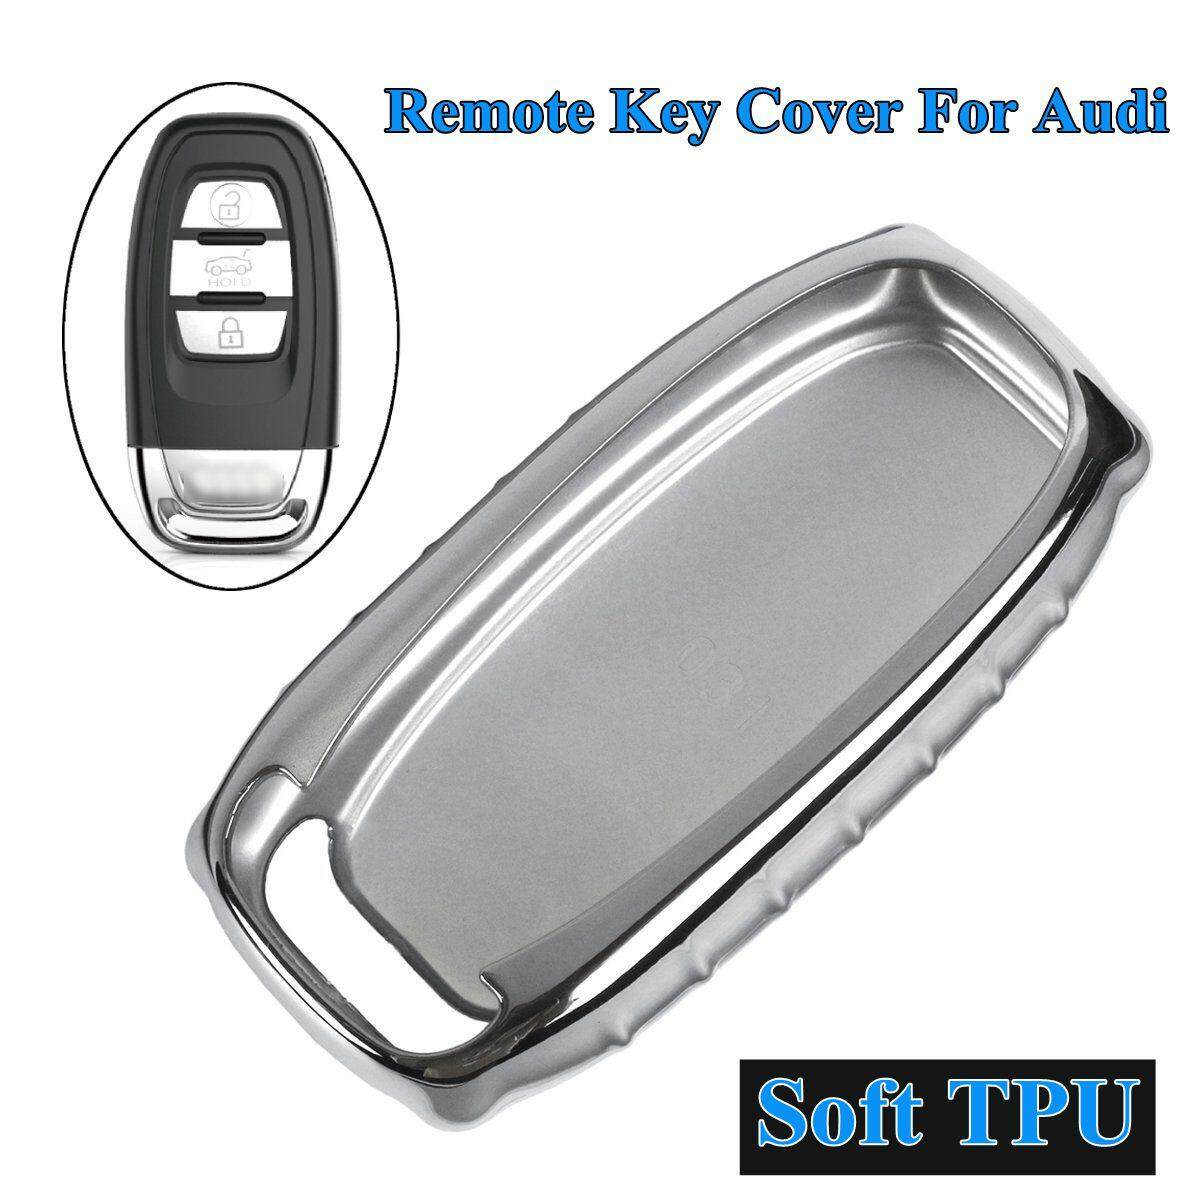 Tpu Remote Key Cover Case Shell For Audi A4 A5 A6 Q5 Rs7 S7 A7 A8 Q5 S5 S6 (silver) By Teamwin.